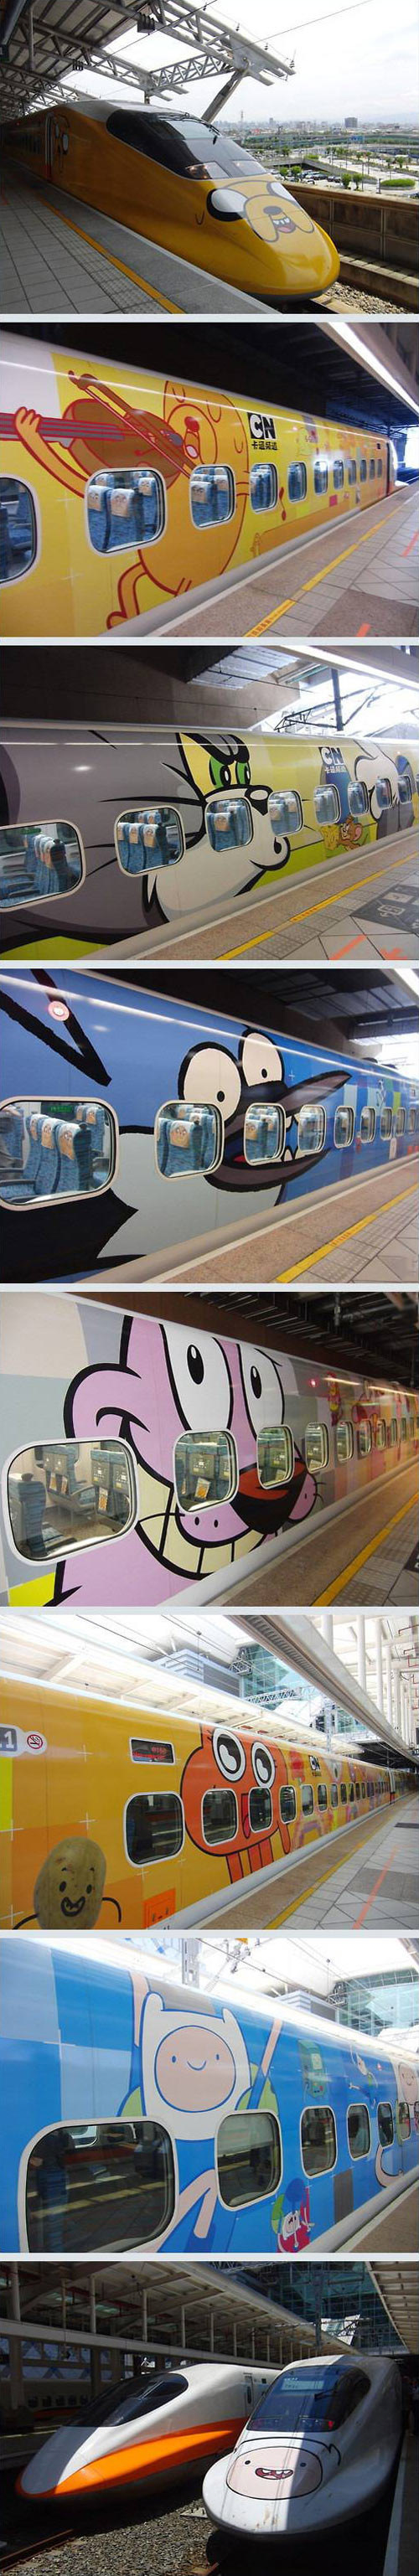 The world's first Cartoon Network themed train in Taiwan…